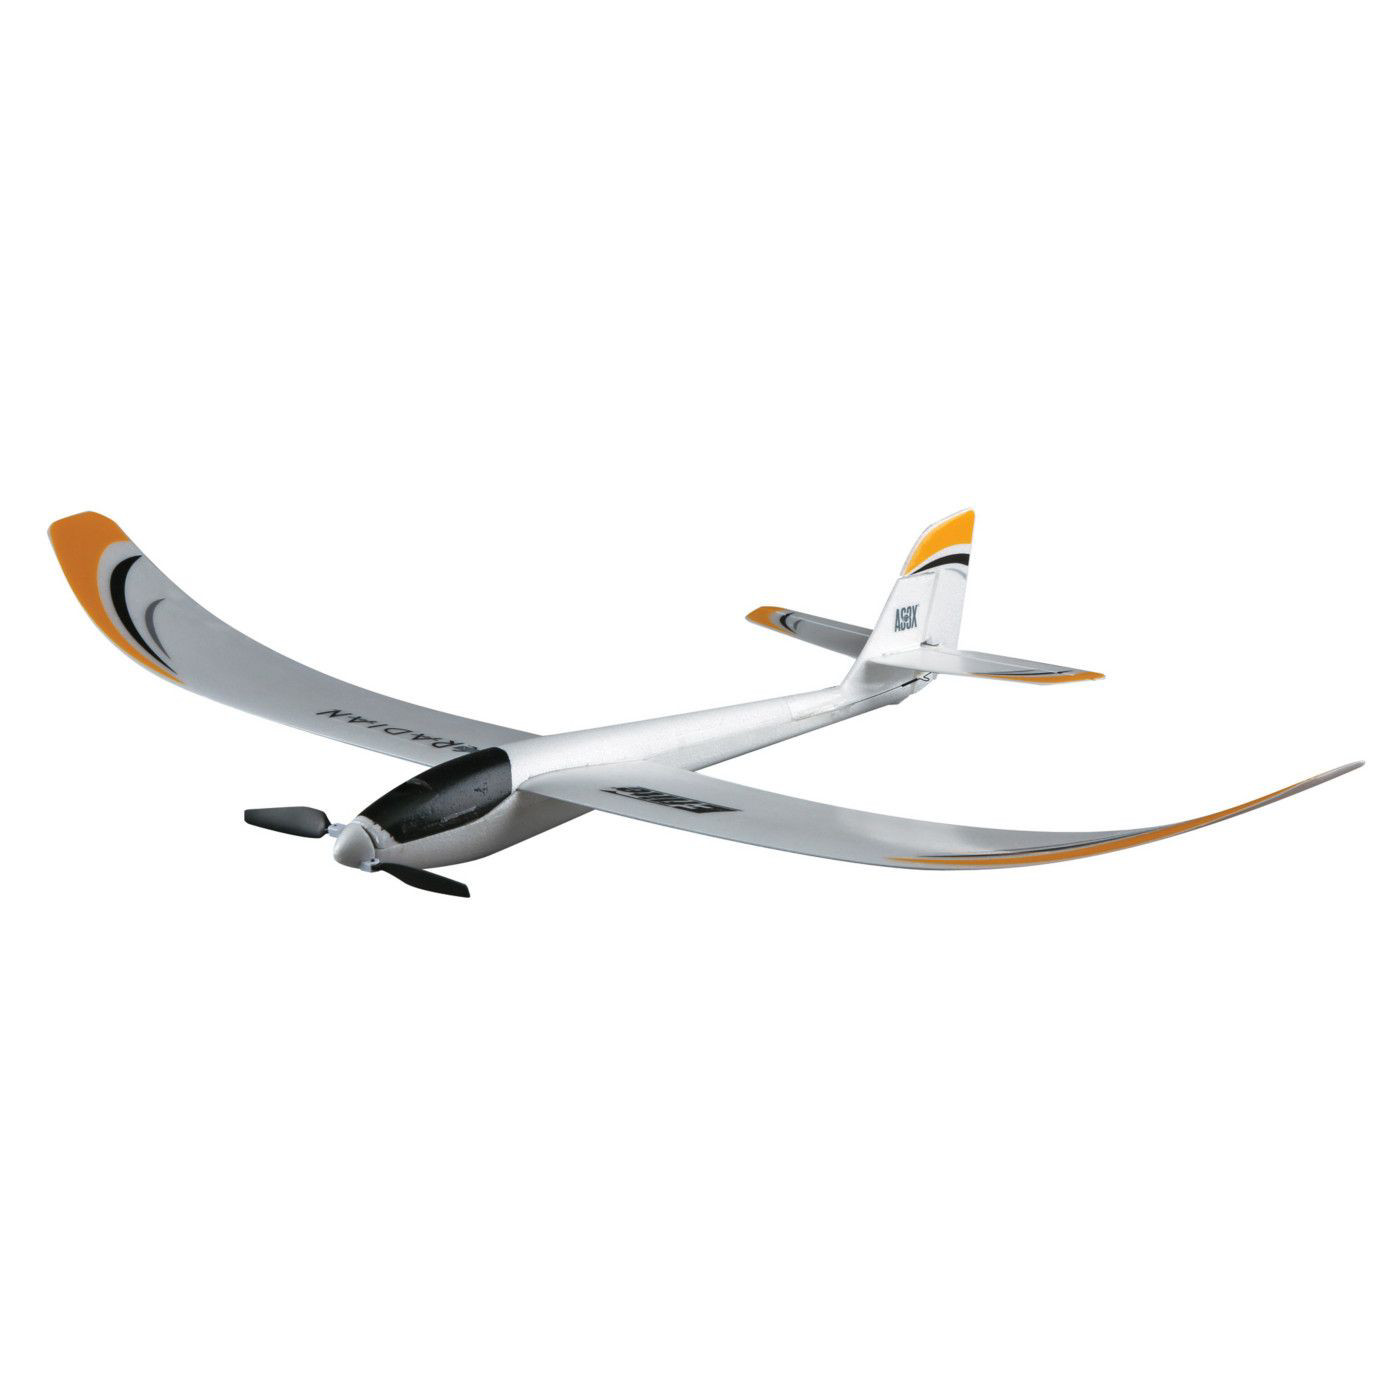 E-flite UMX Radian BNF with AS3X